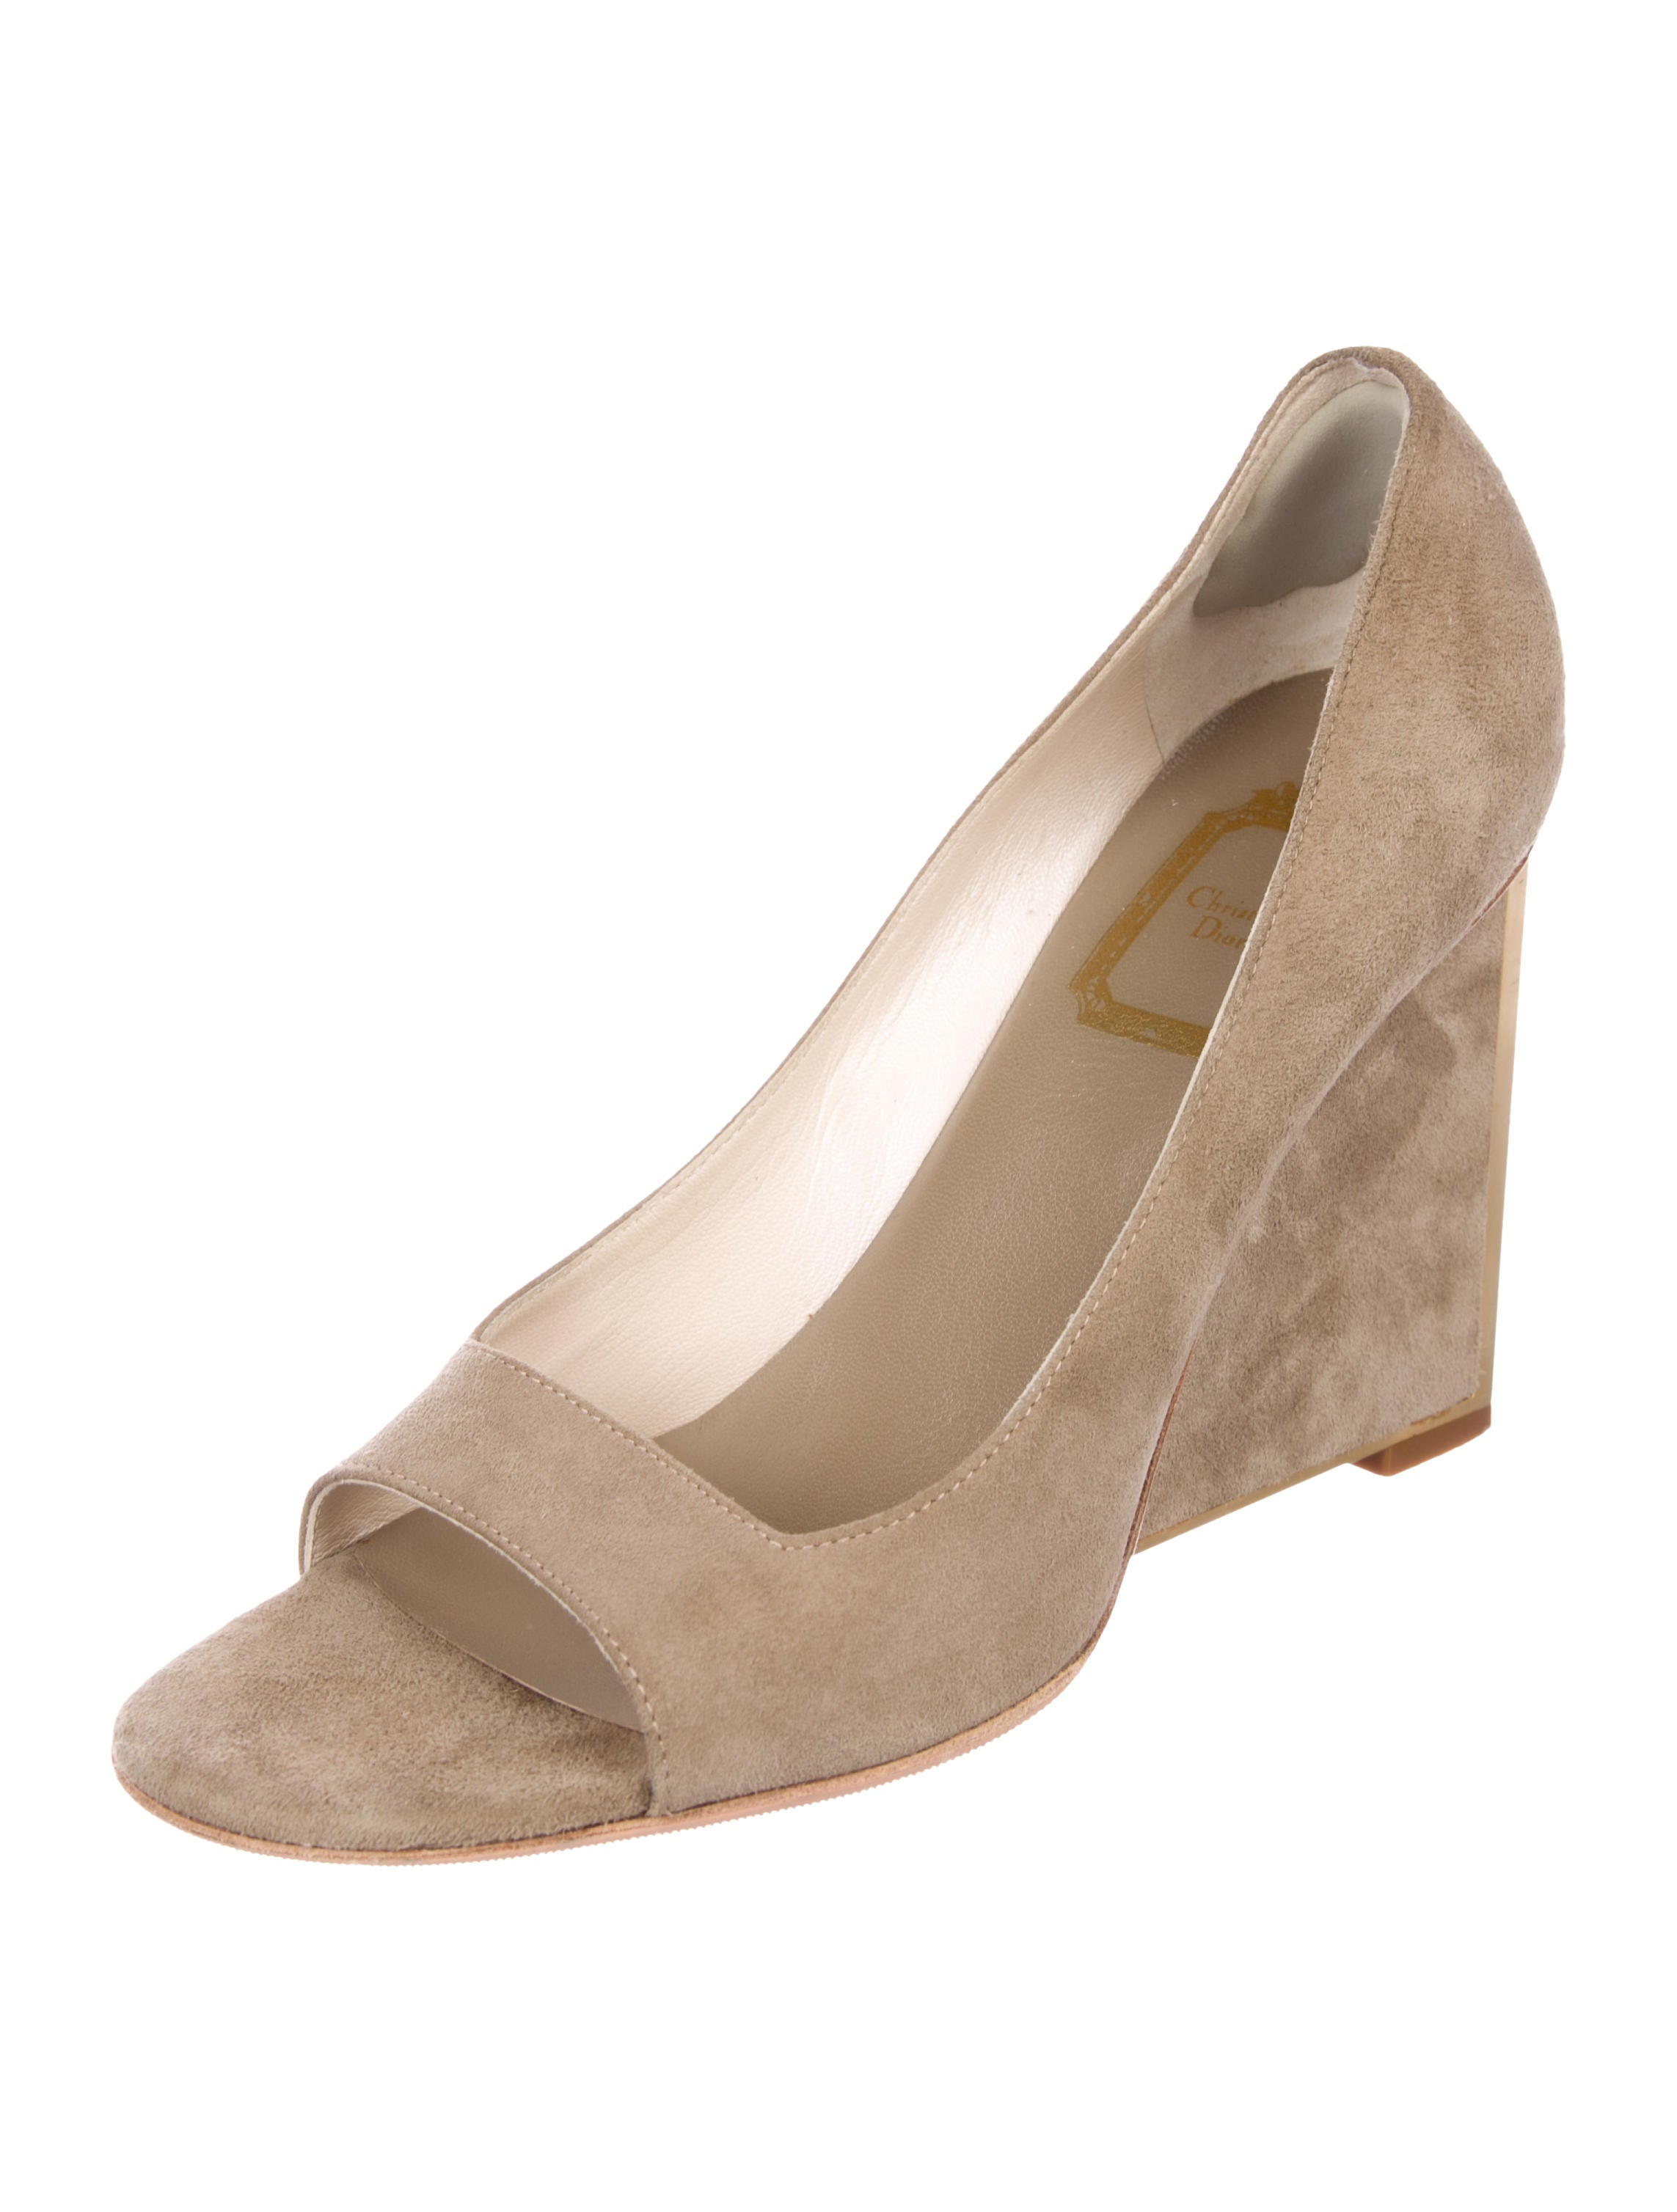 Christian Dior Suede Peep-Toe Wedges outlet professional jfdfv